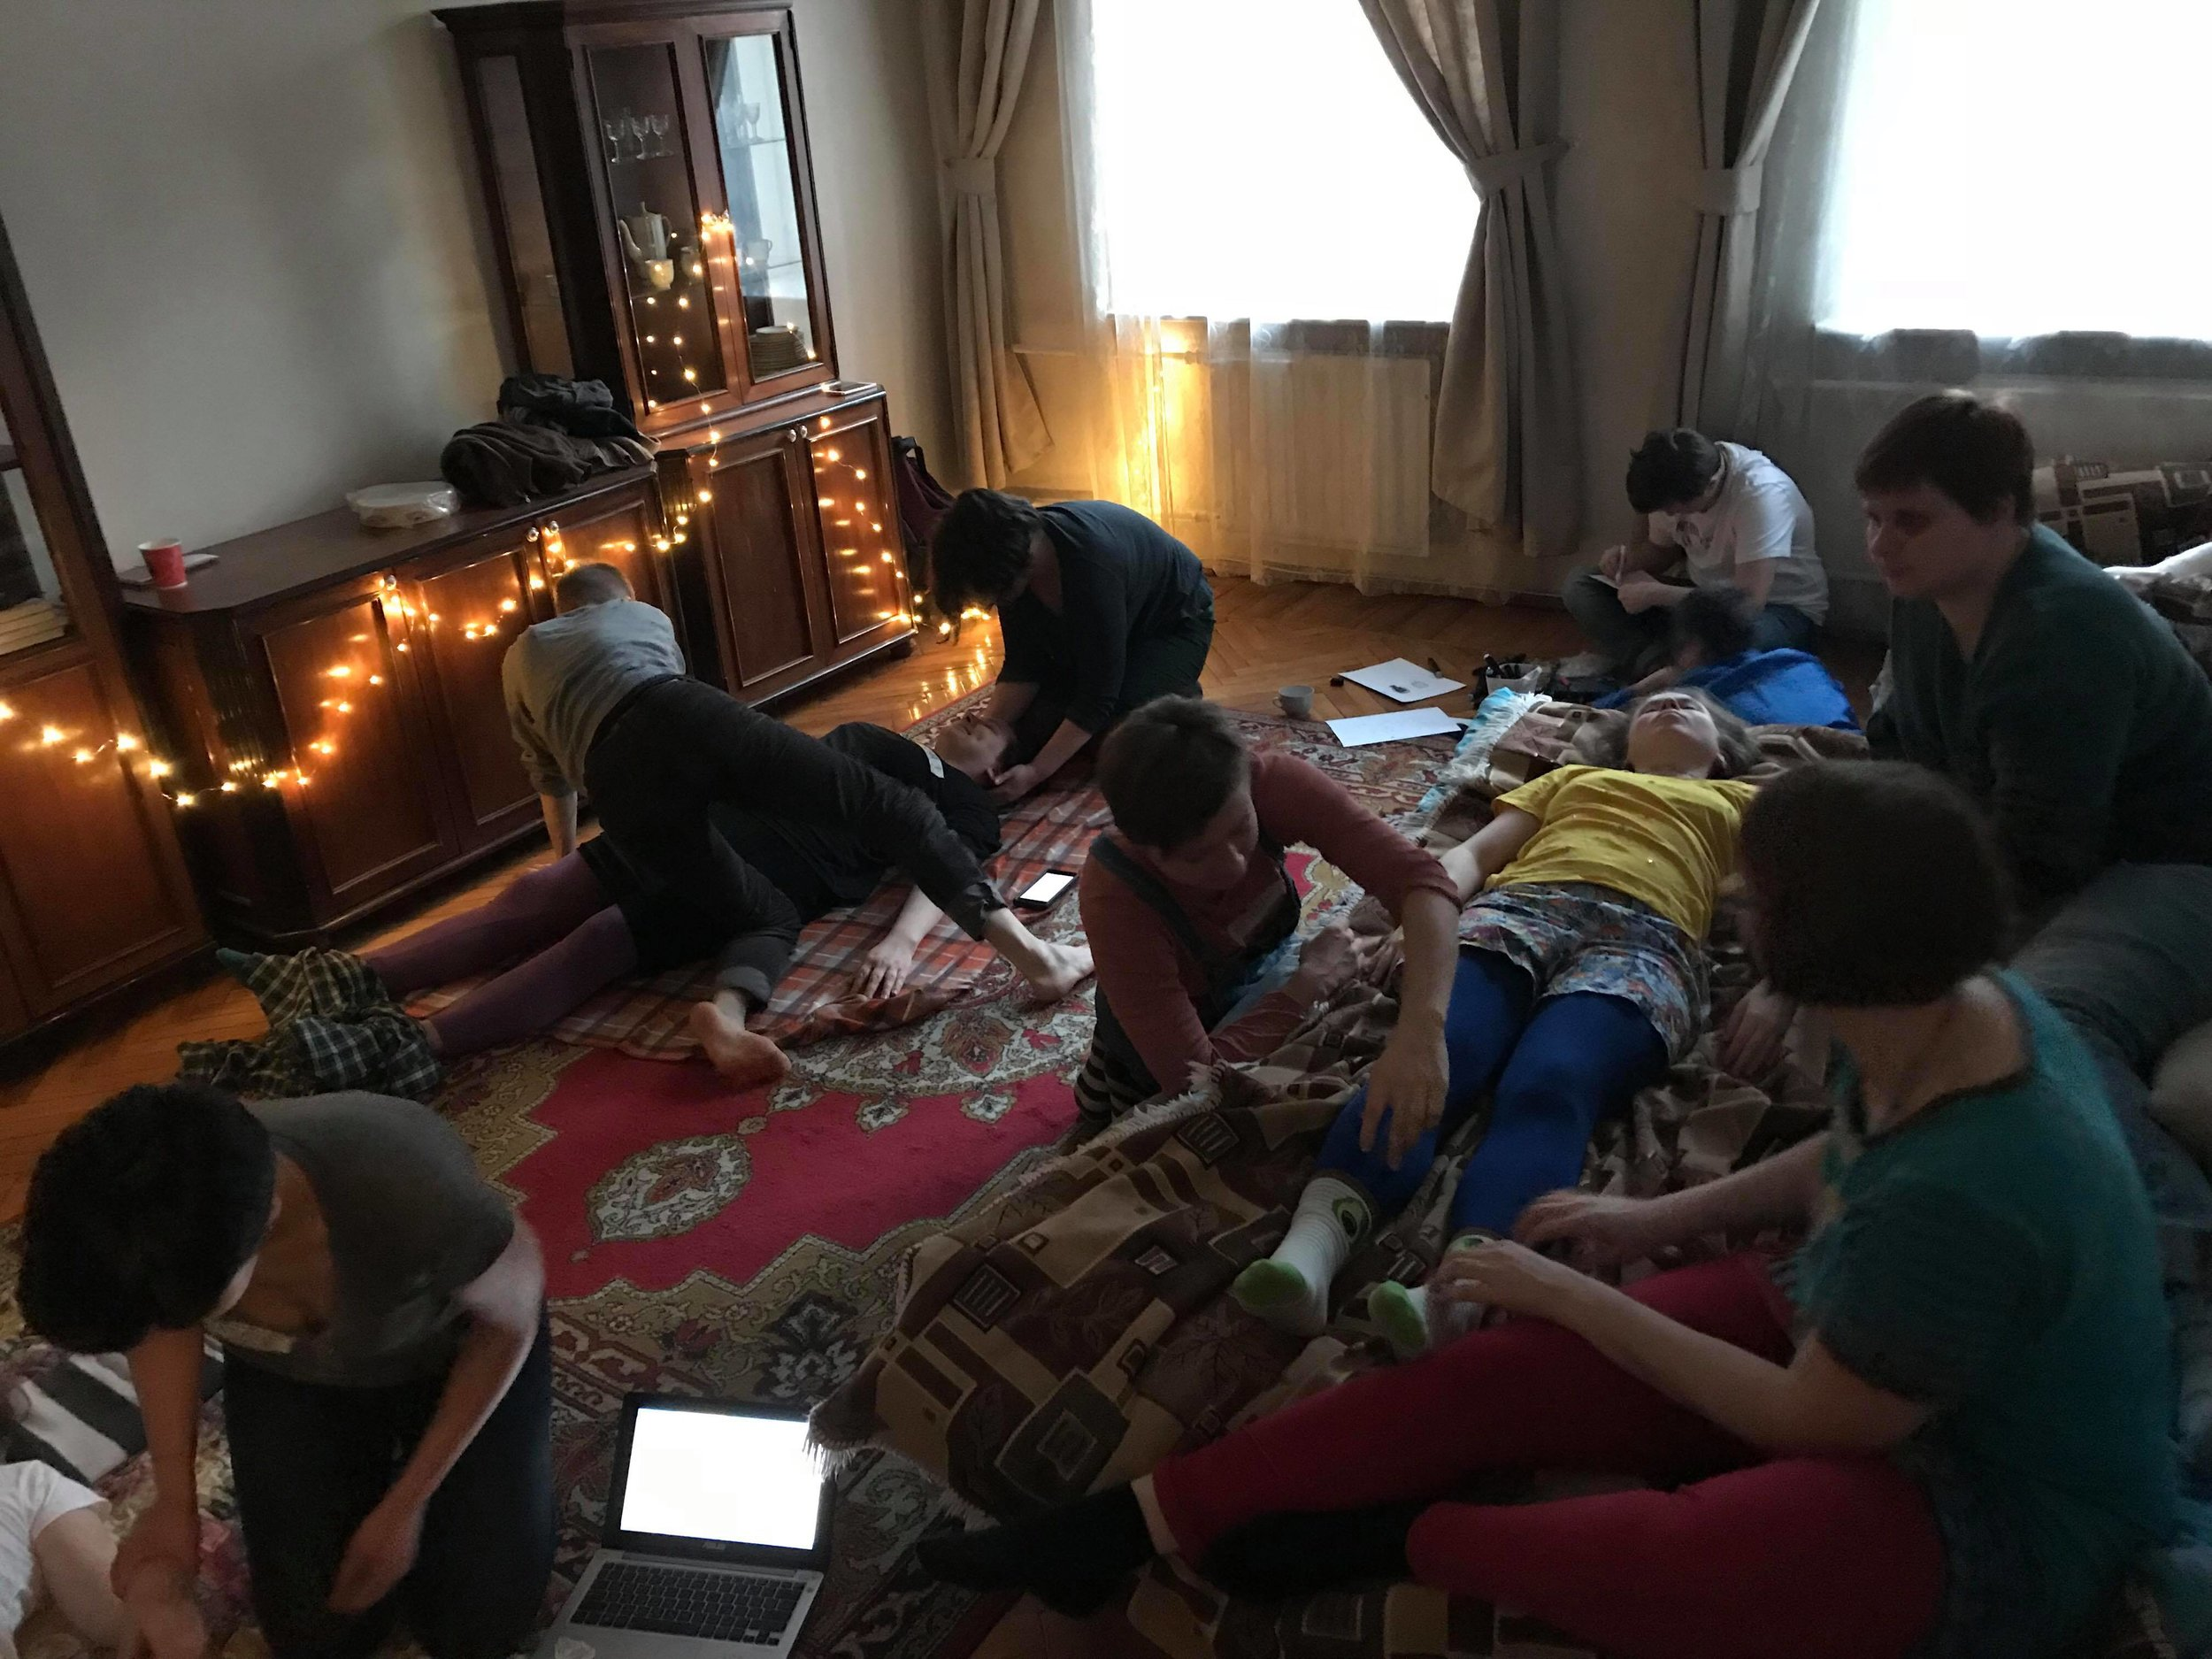 Telaboratoria Cuddle Party, St. Petersburg, April 2018